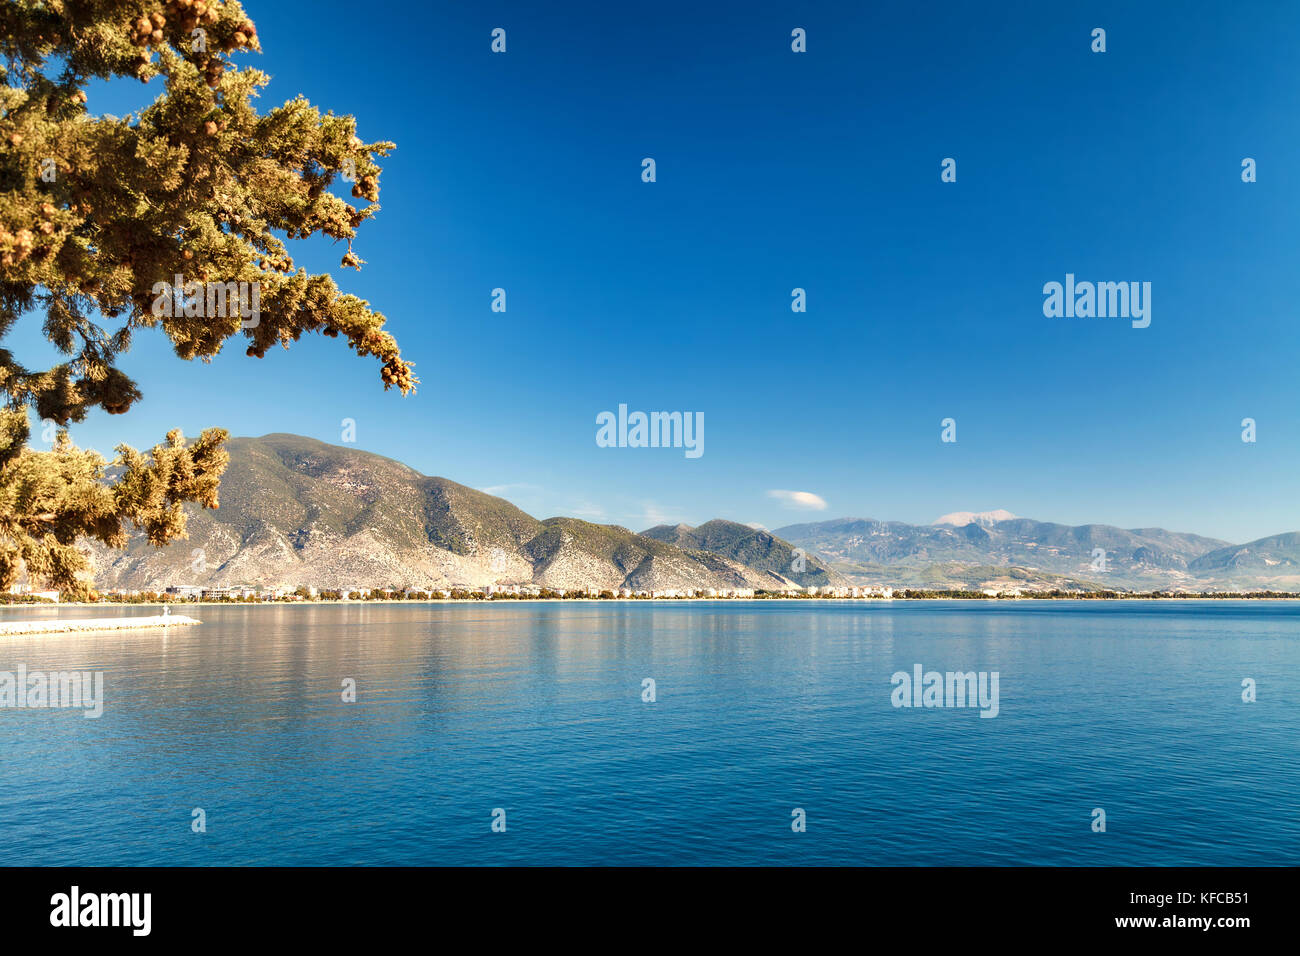 Gulf in the Mediterranean Sea. Mountain ranges in Kemer. Beautiful view of the beach - Stock Image